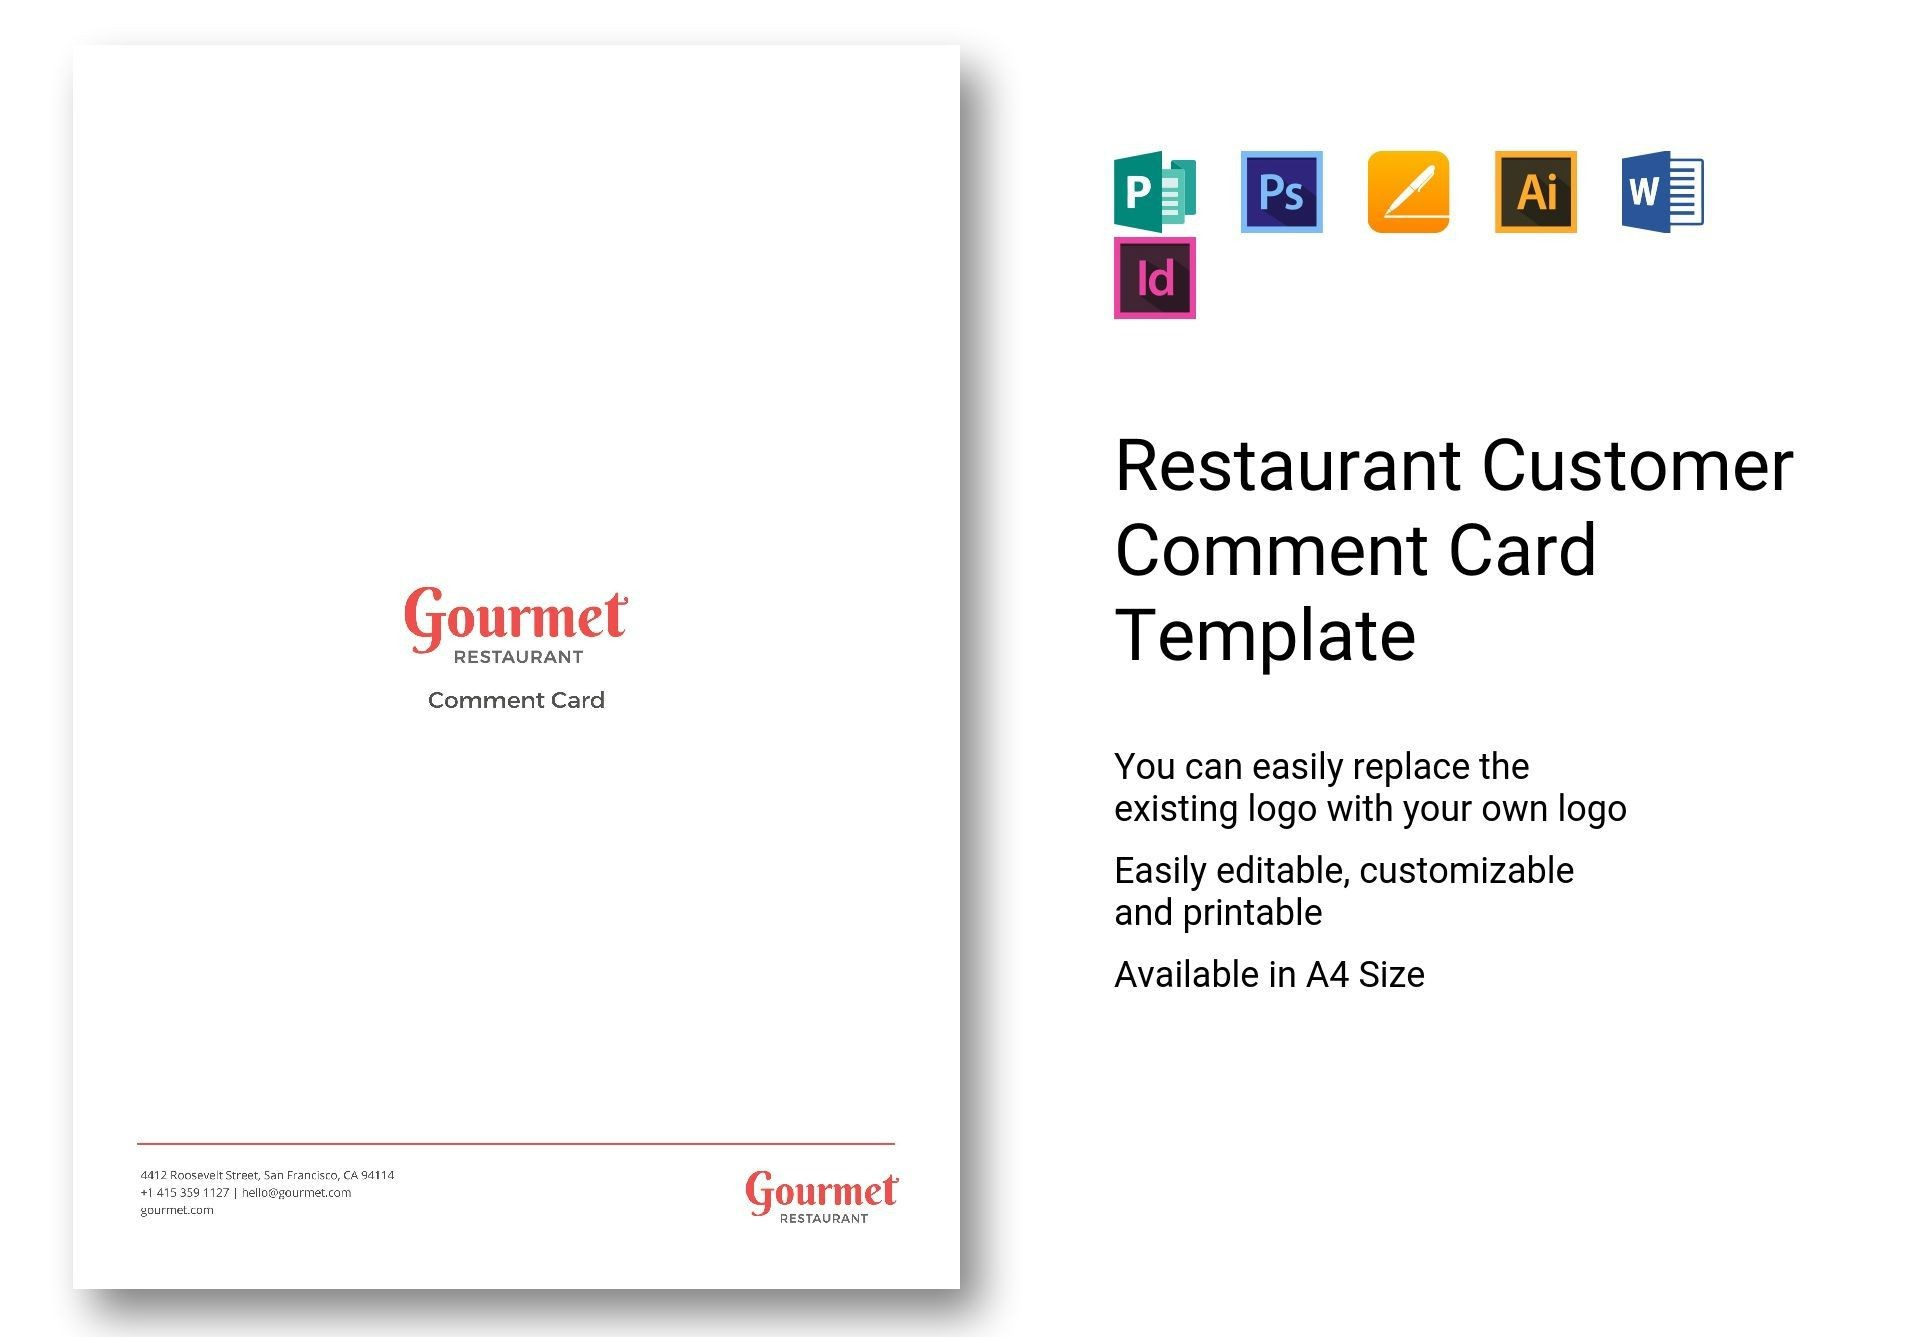 004 Impressive Restaurant Customer Comment Card Template Concept  For Word Free1920